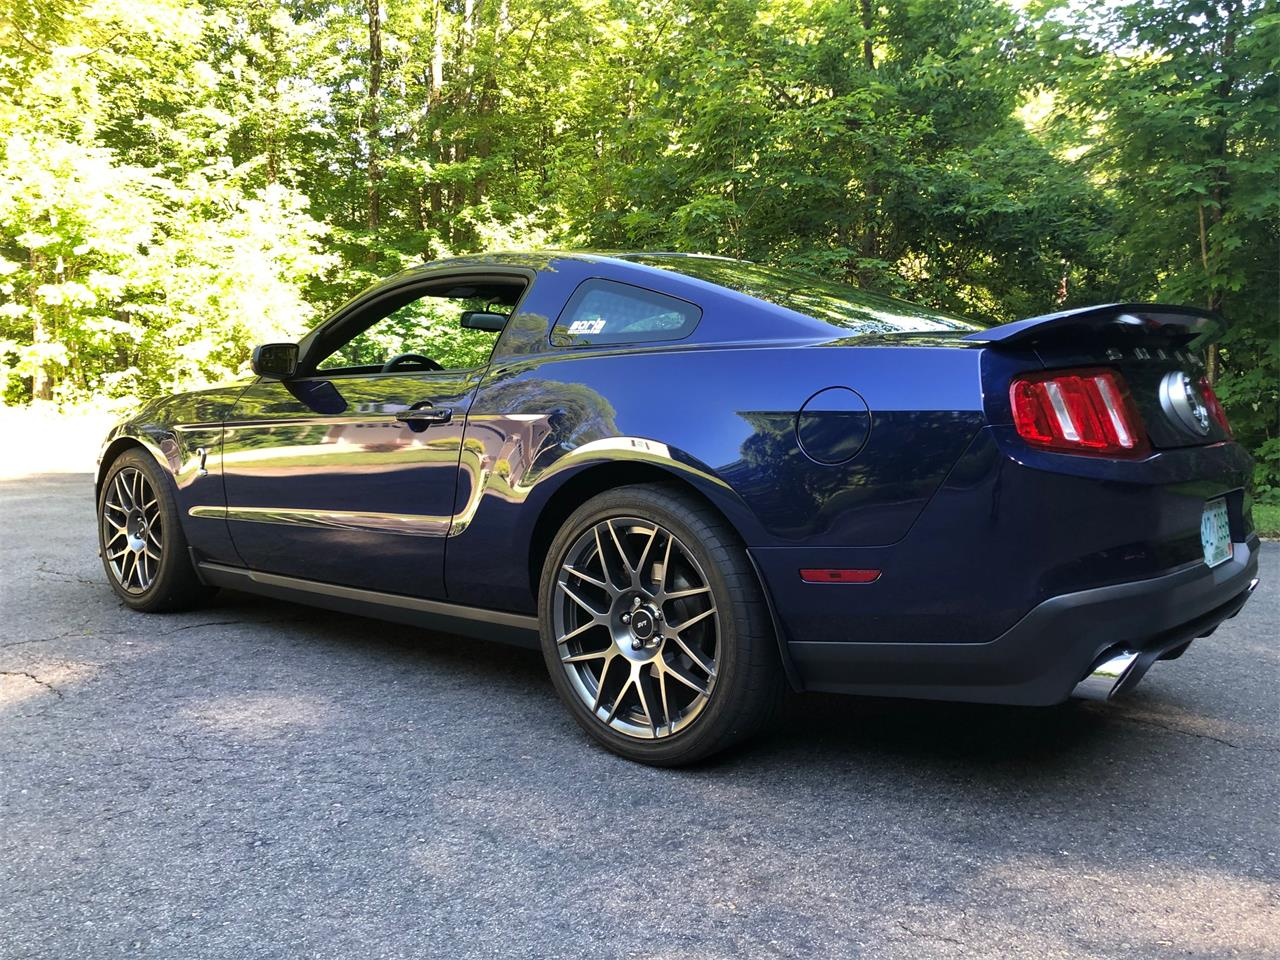 2011 Ford Shelby GT500 SVT (CC-1358942) for sale in Weare, New Hampshire